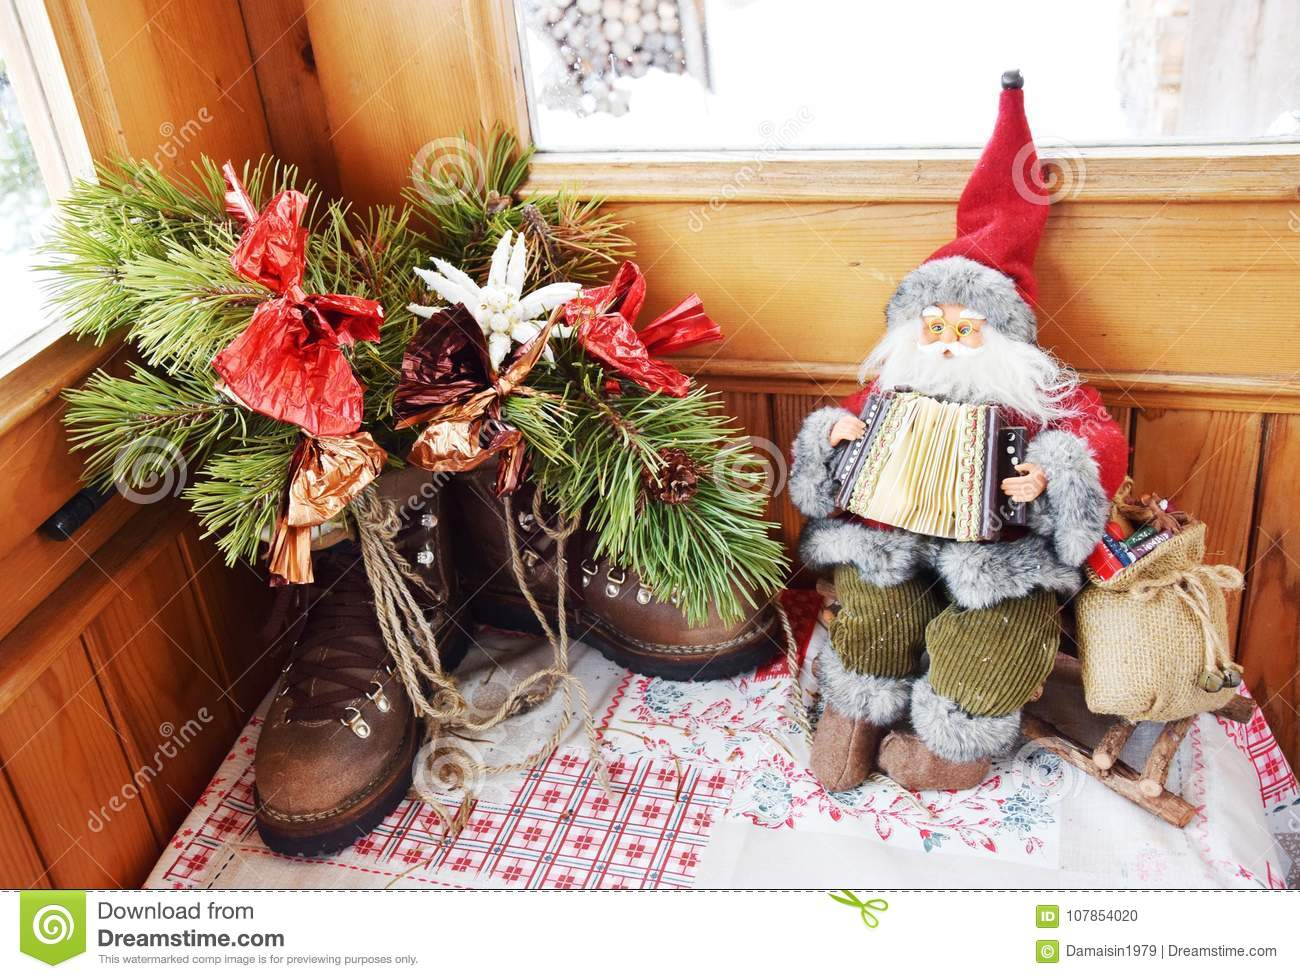 Santa Claus toy, shoose and snow in Dolomity mountains, winter image